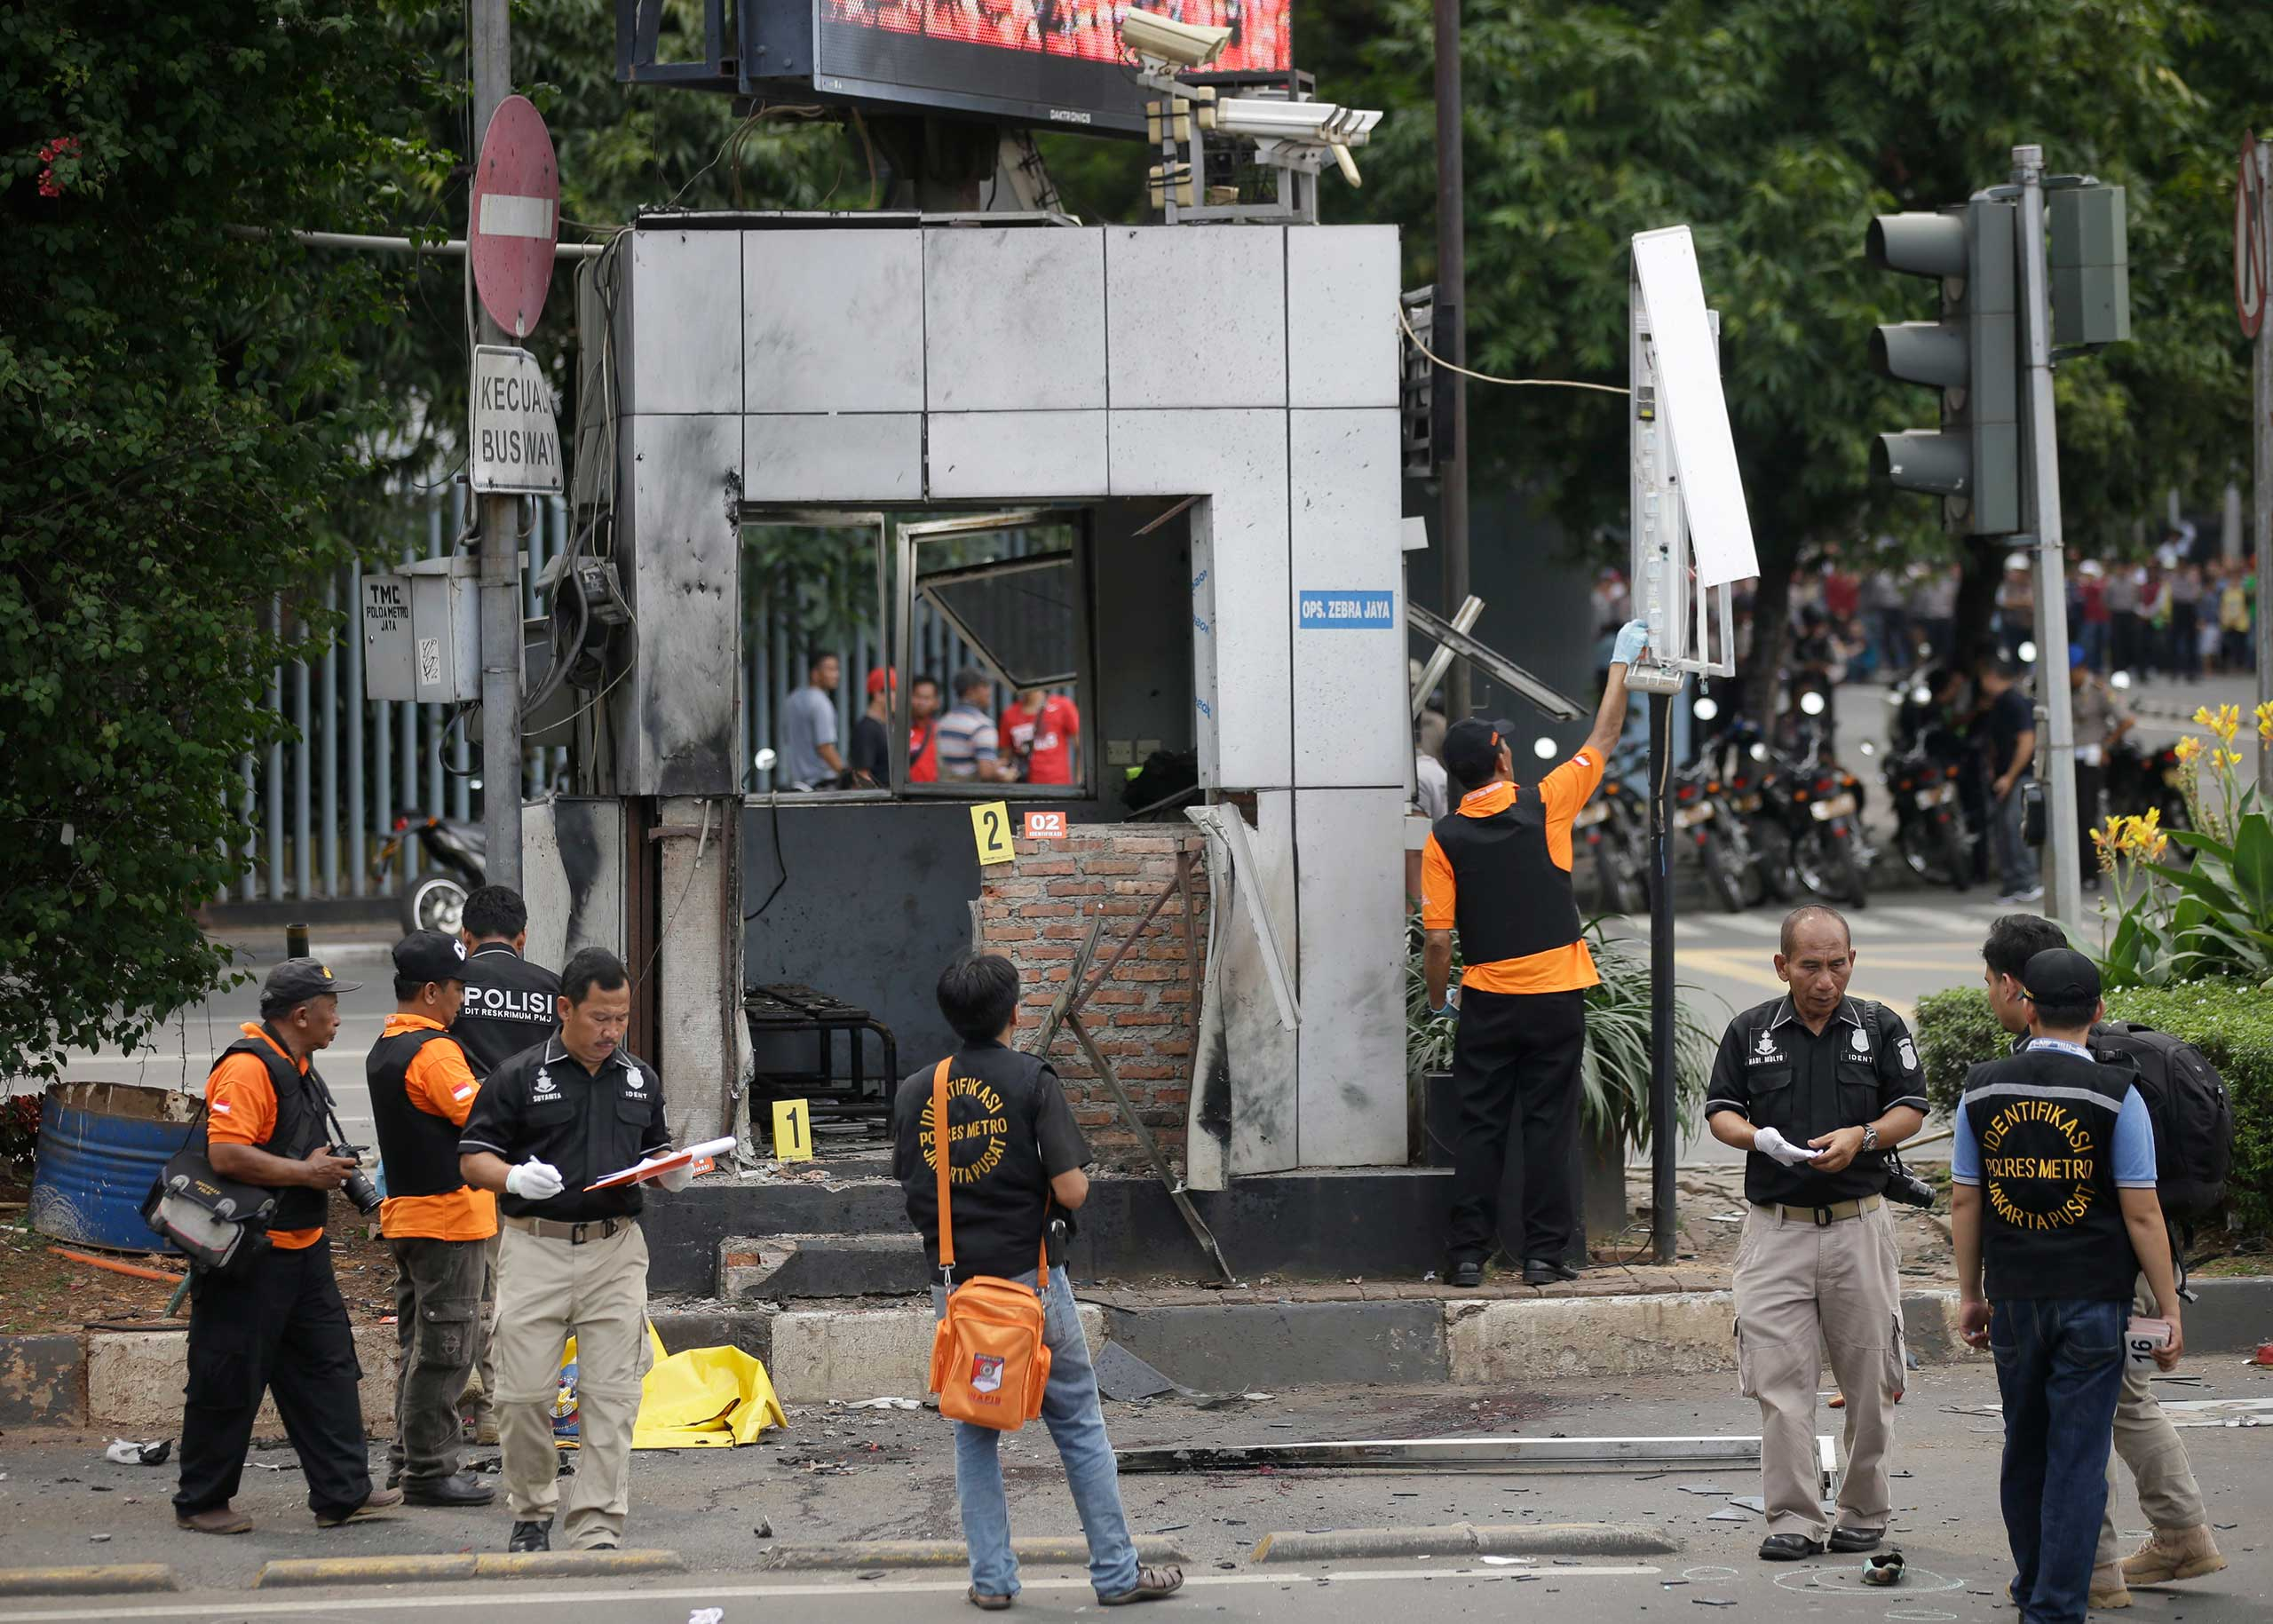 Officers examine a police post where an explosion went off in Jakarta, Indonesia, Jan. 14, 2016. Attackers set off explosions in a bustling shopping area in Indonesia's capital and waged gun battles with police, leaving bodies in the streets as office workers watched from high-rise windows.